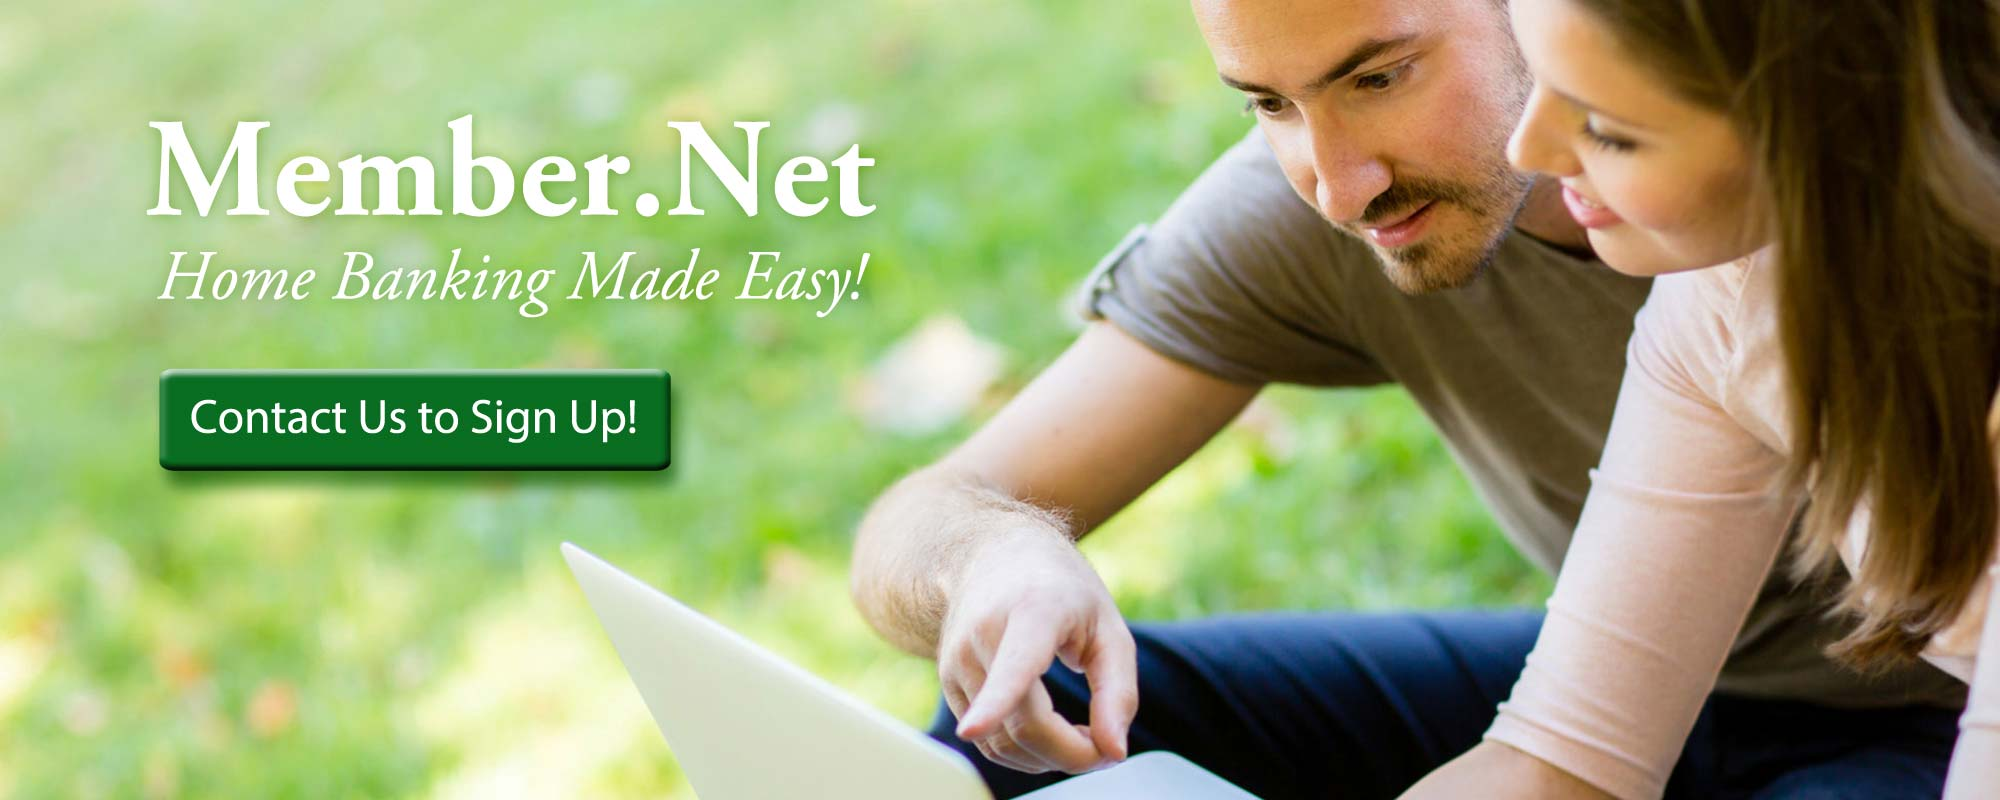 Member.Net...Home Banking made easy!